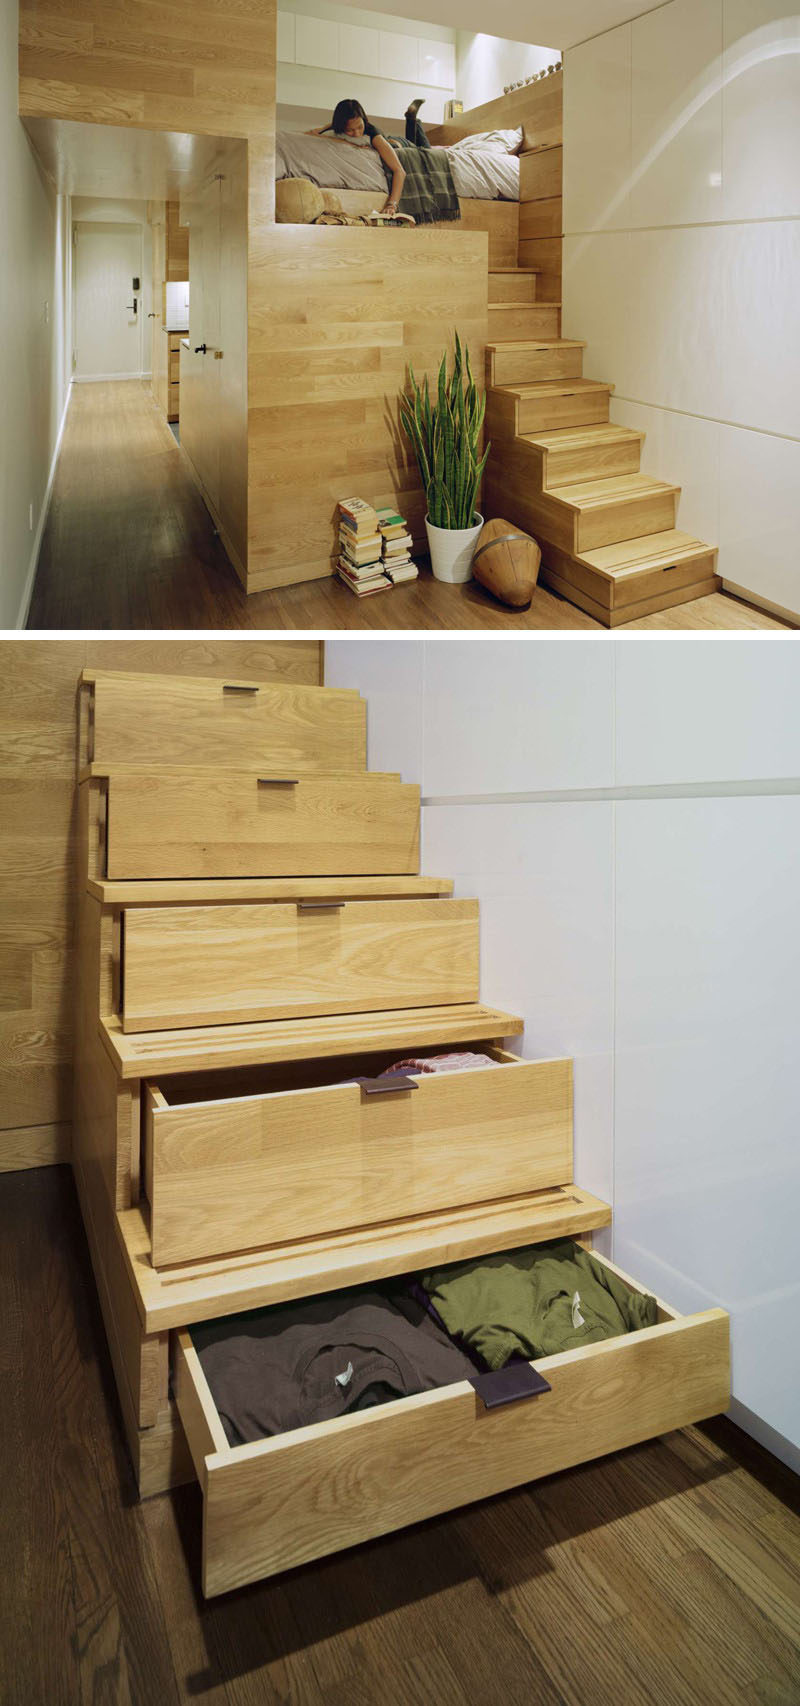 13 Stair Design Ideas For Small Spaces // The staircase leading to the loft bed in this apartment also doubles as clothing storage, taking care of two problems with one staircase.